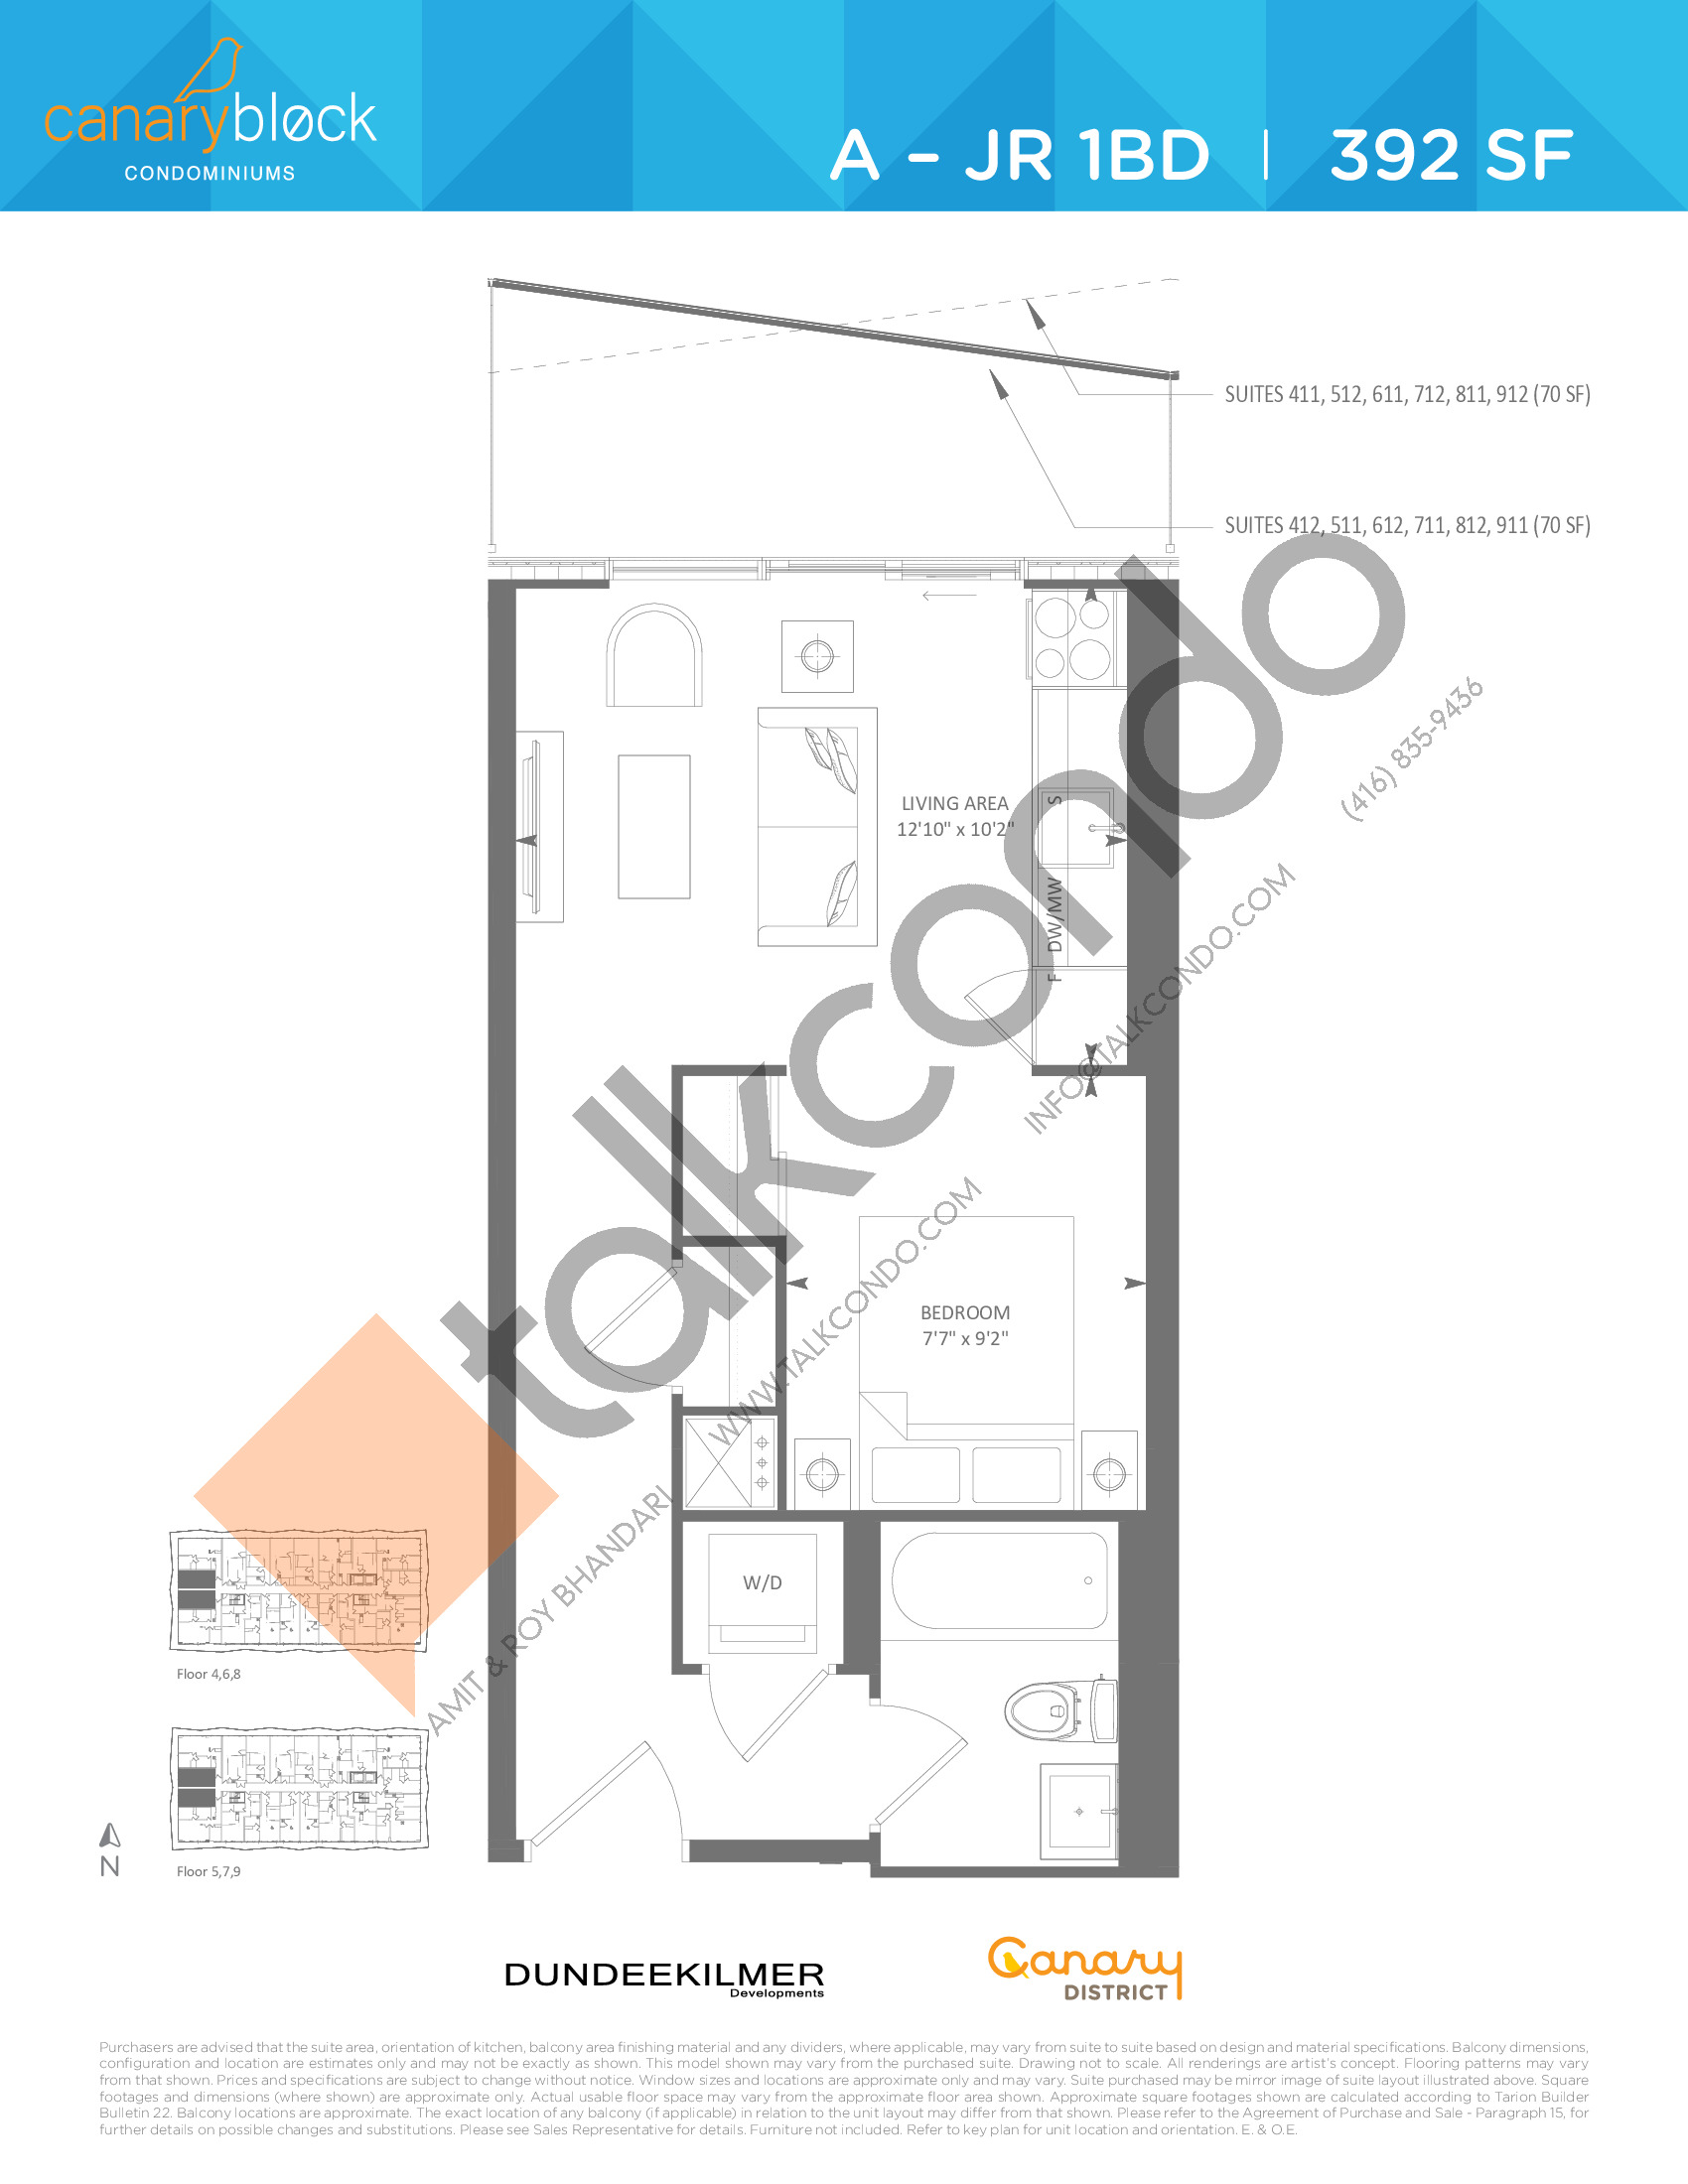 A - JR 1BD Floor Plan at Canary Block Condos - 392 sq.ft